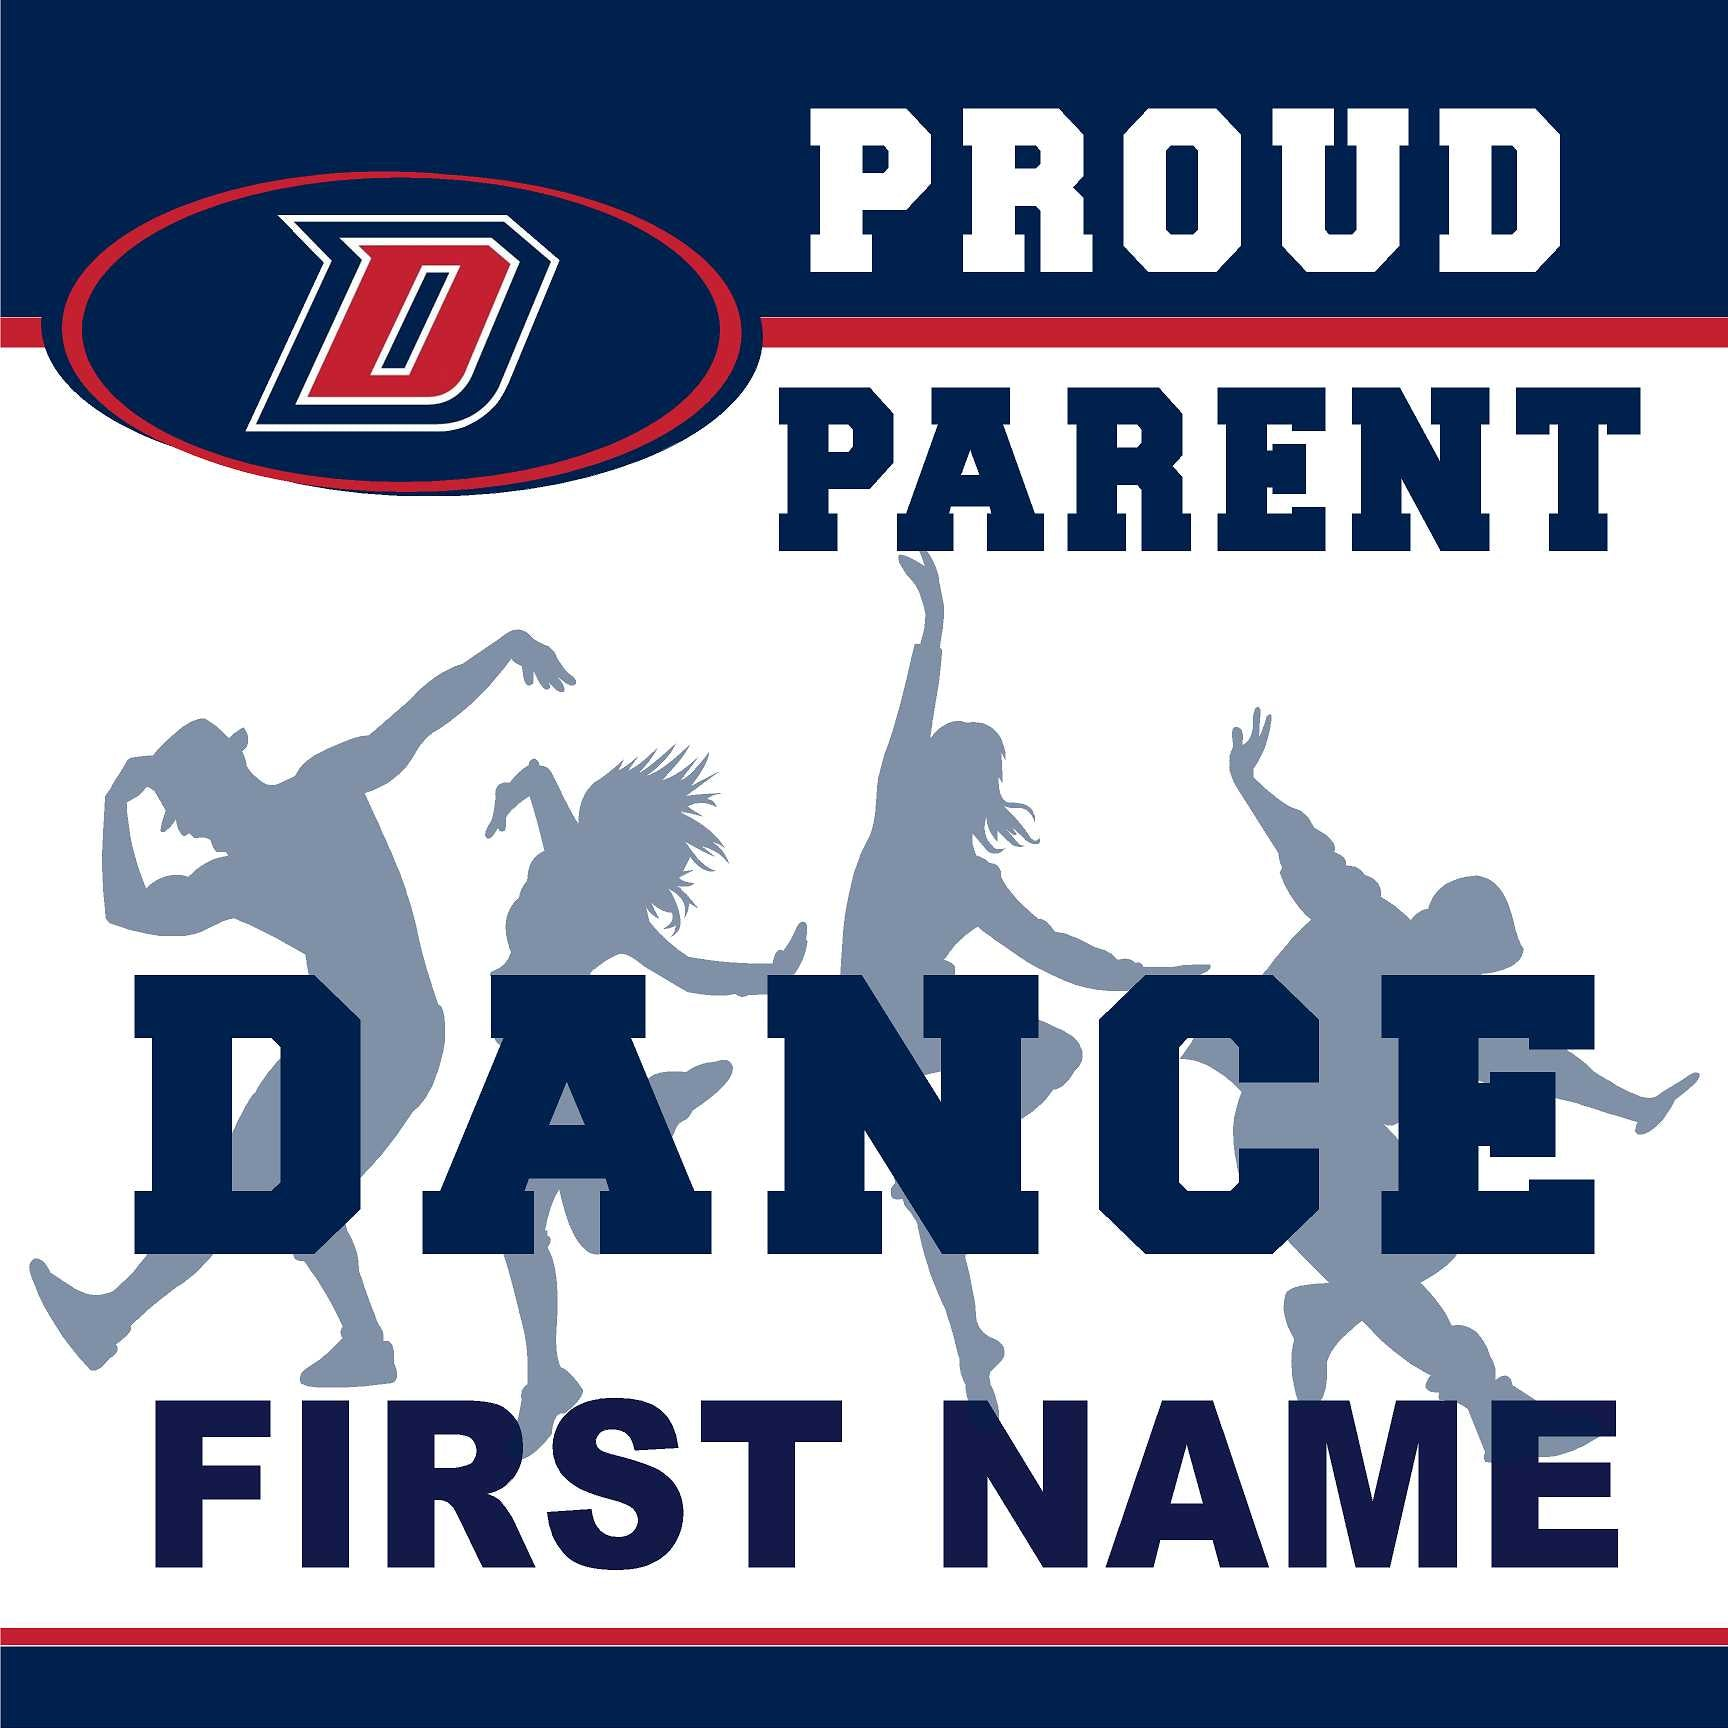 Dublin High School Dance (Parent) 24x24 Yard Sign (includes installation in your yard)